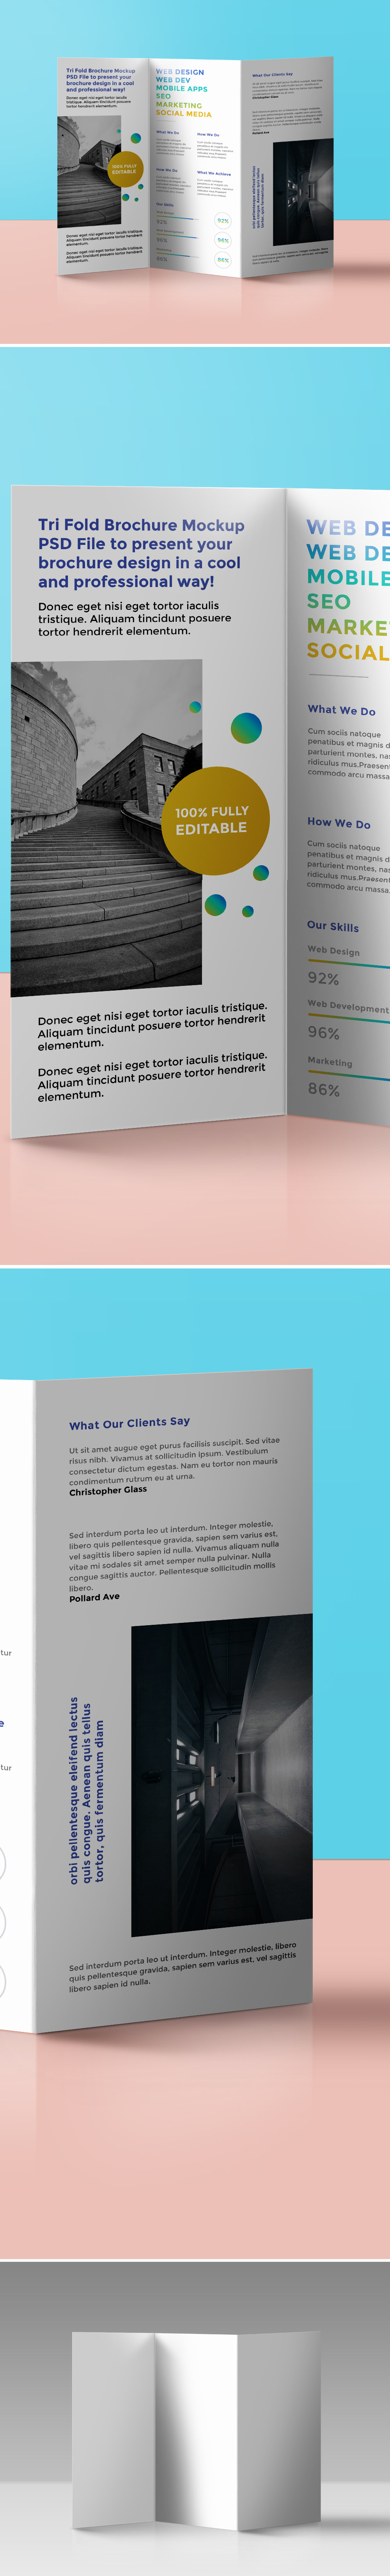 Tri fold brochure mockup psd graphicsfuel for Brochure design psd file